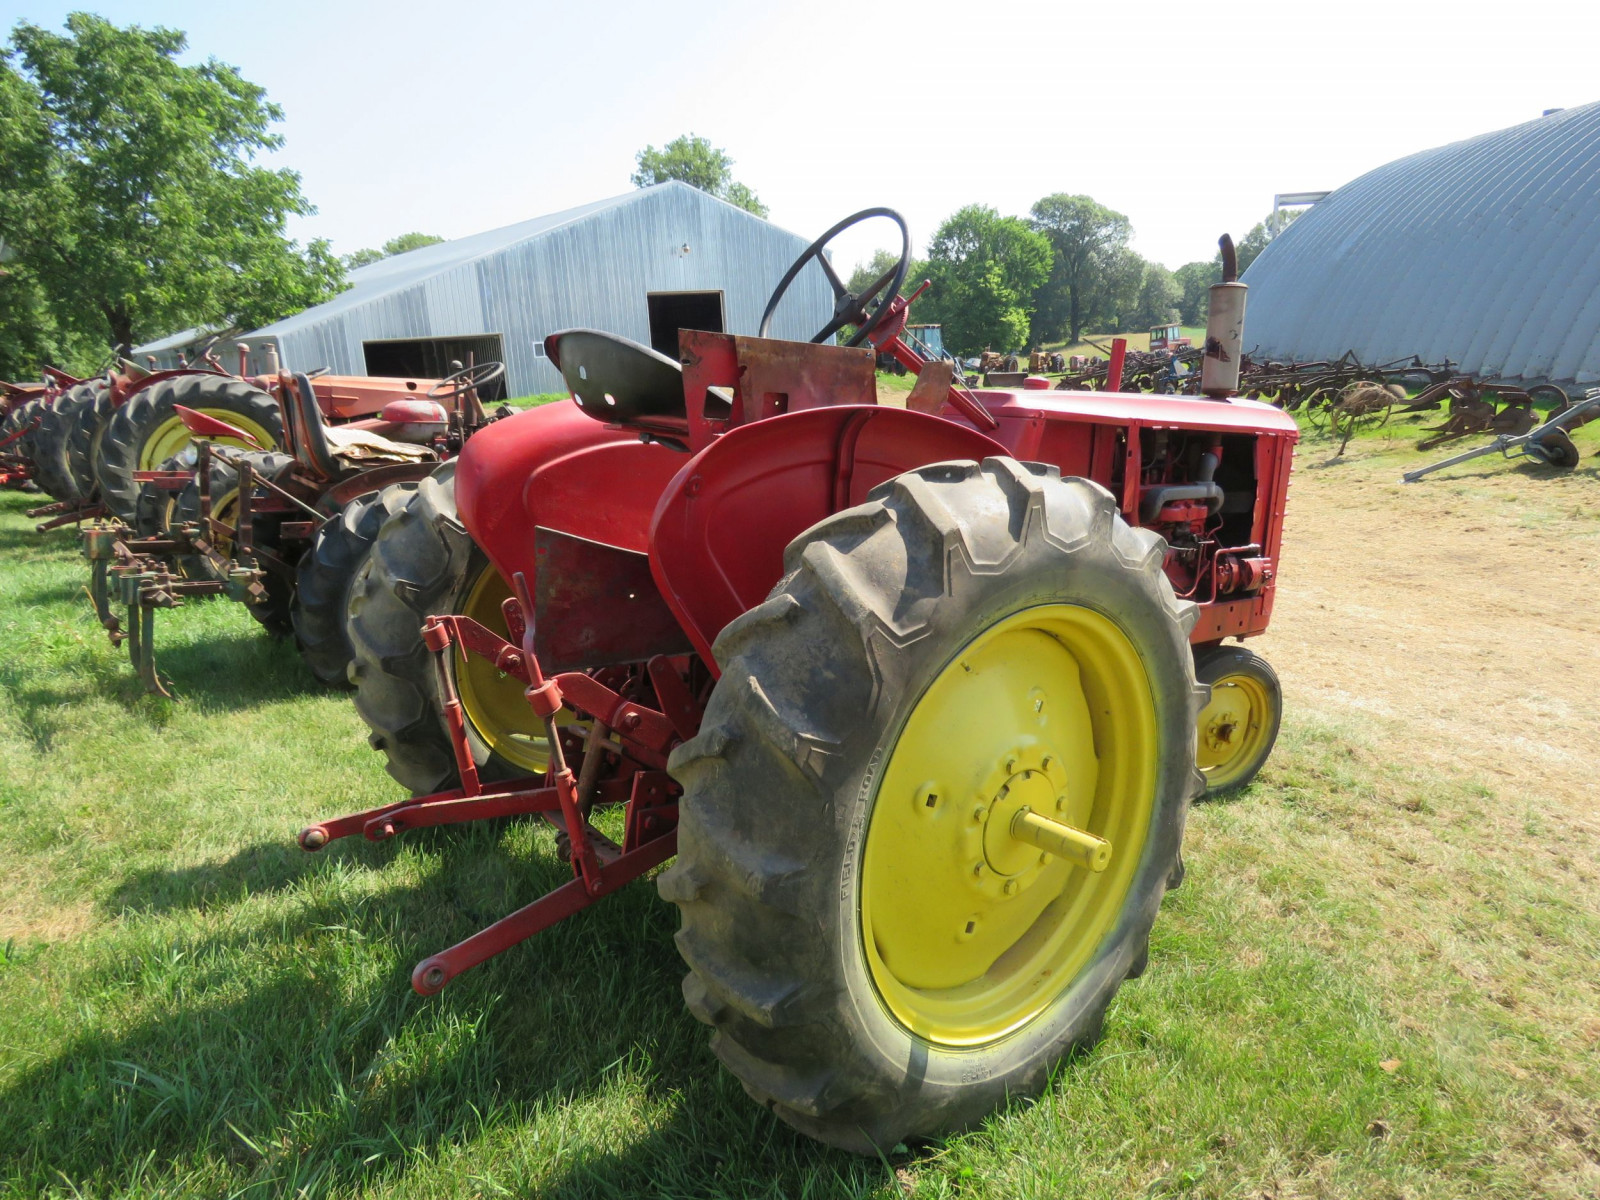 Massey Harris Row Crop 81 Tractor - Image 3